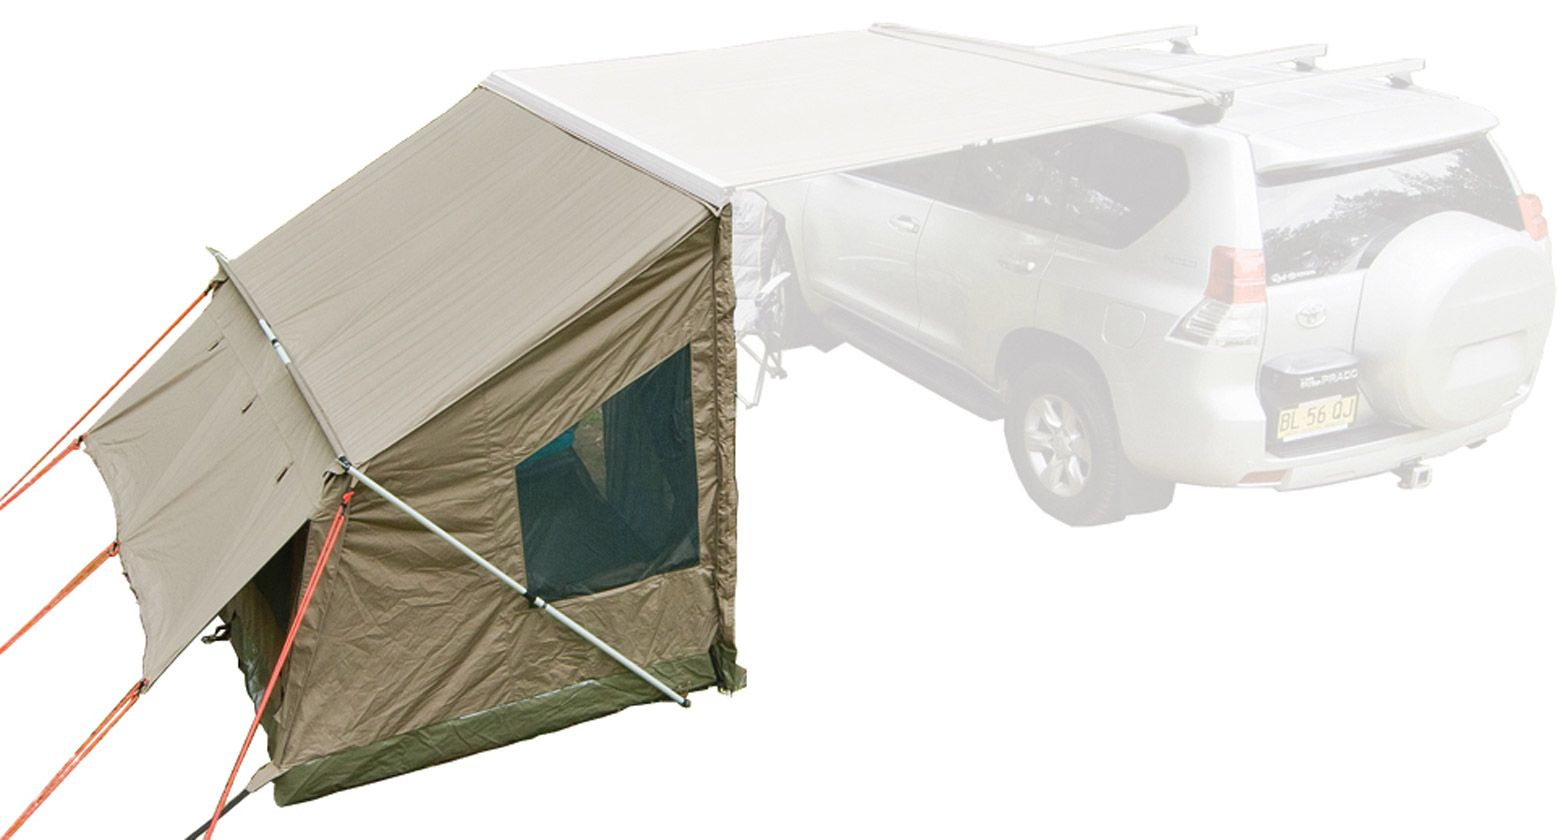 749 Rhino Rack S Tagalong Tent Is The Perfect Accessory For The Avid Camper Or Beach Goer Extend Your Adventure Overnig Family Tent Camping Tent Tent Camping